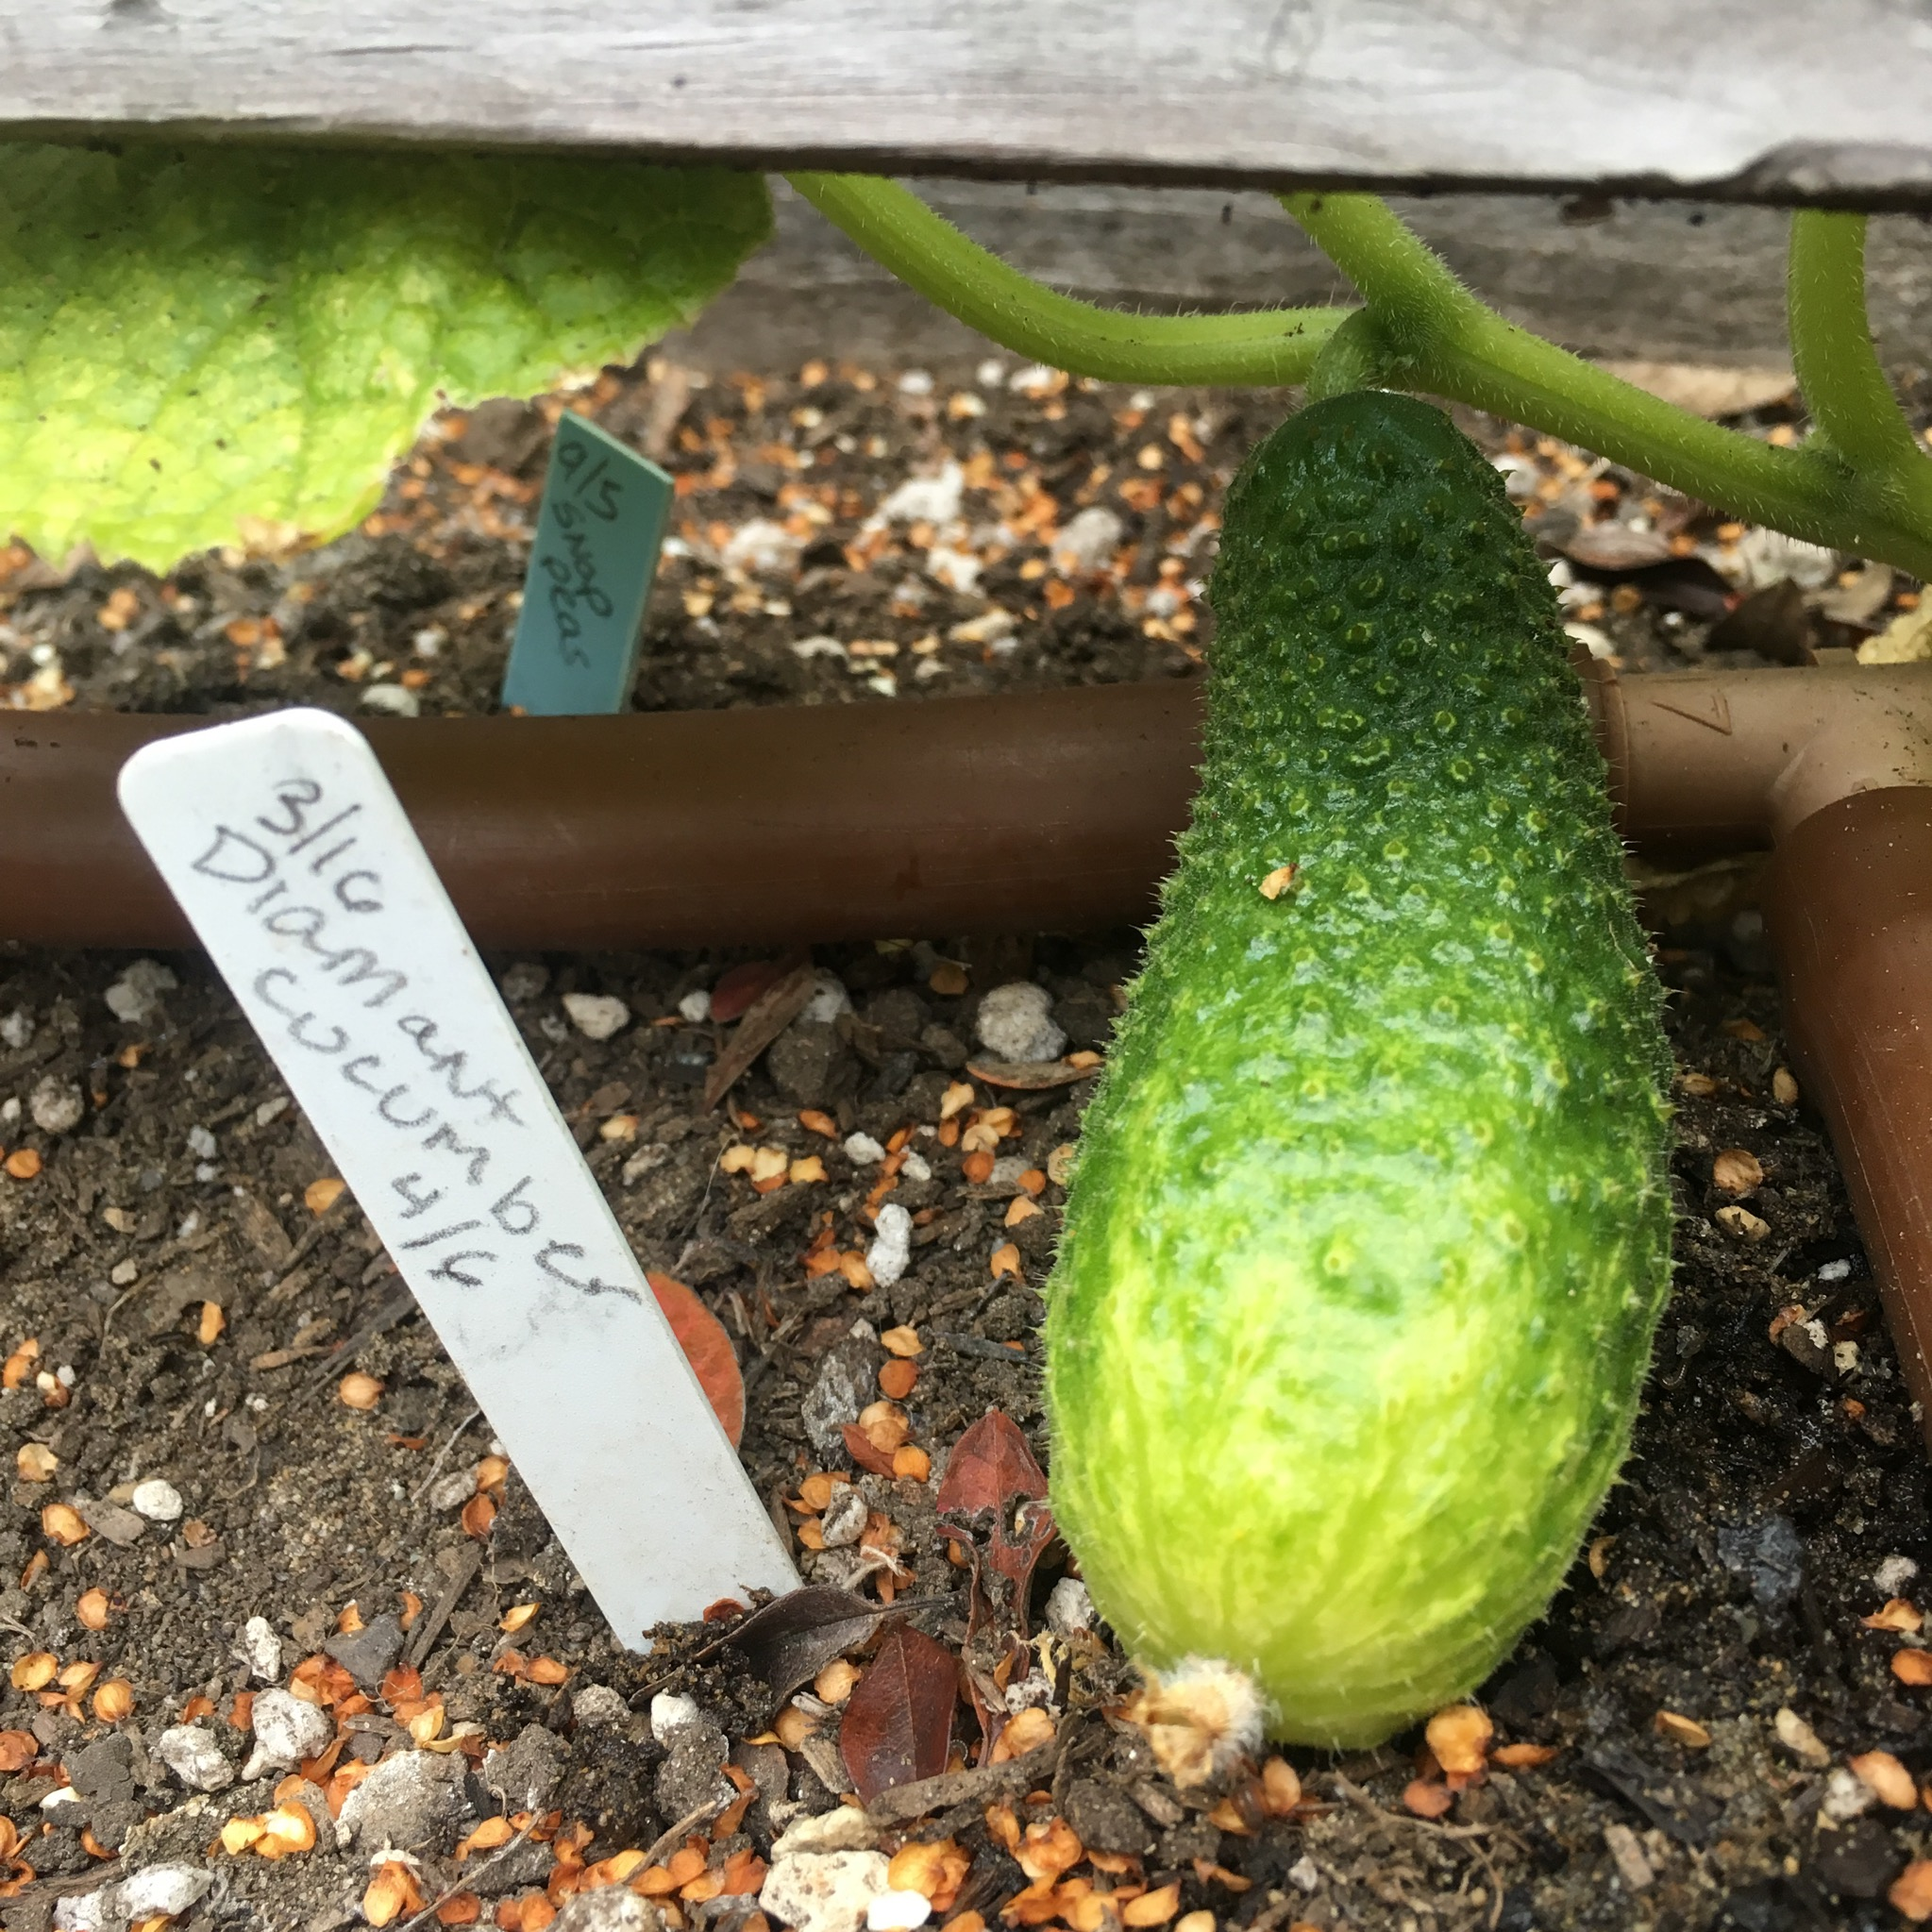 The first cucumbers have arrived. I grow a variety good for pickling